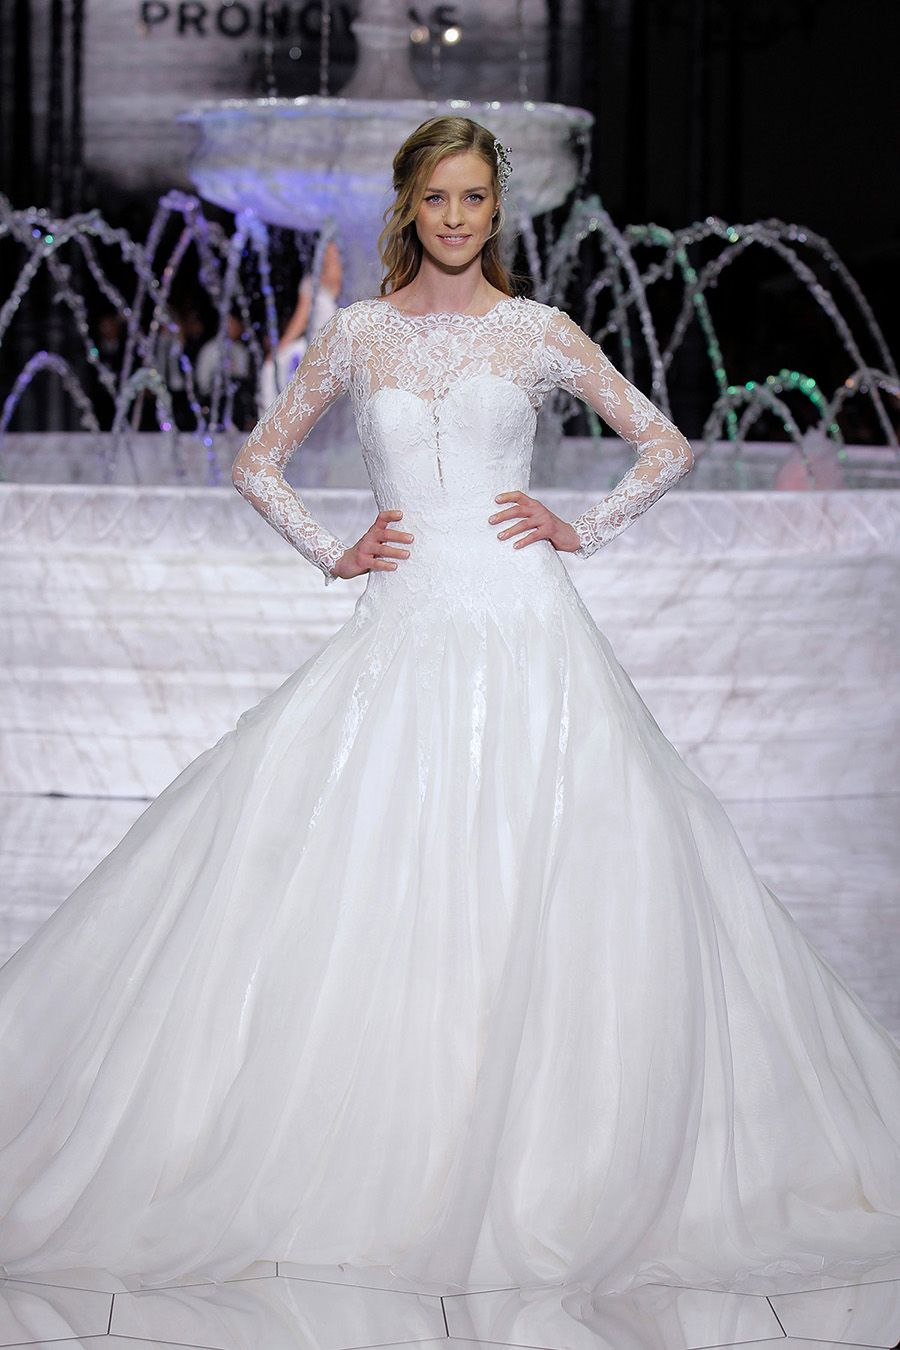 New Princess ball gown Pronovias wedding dress with illusion sleeves and sweetheart neckline The runway